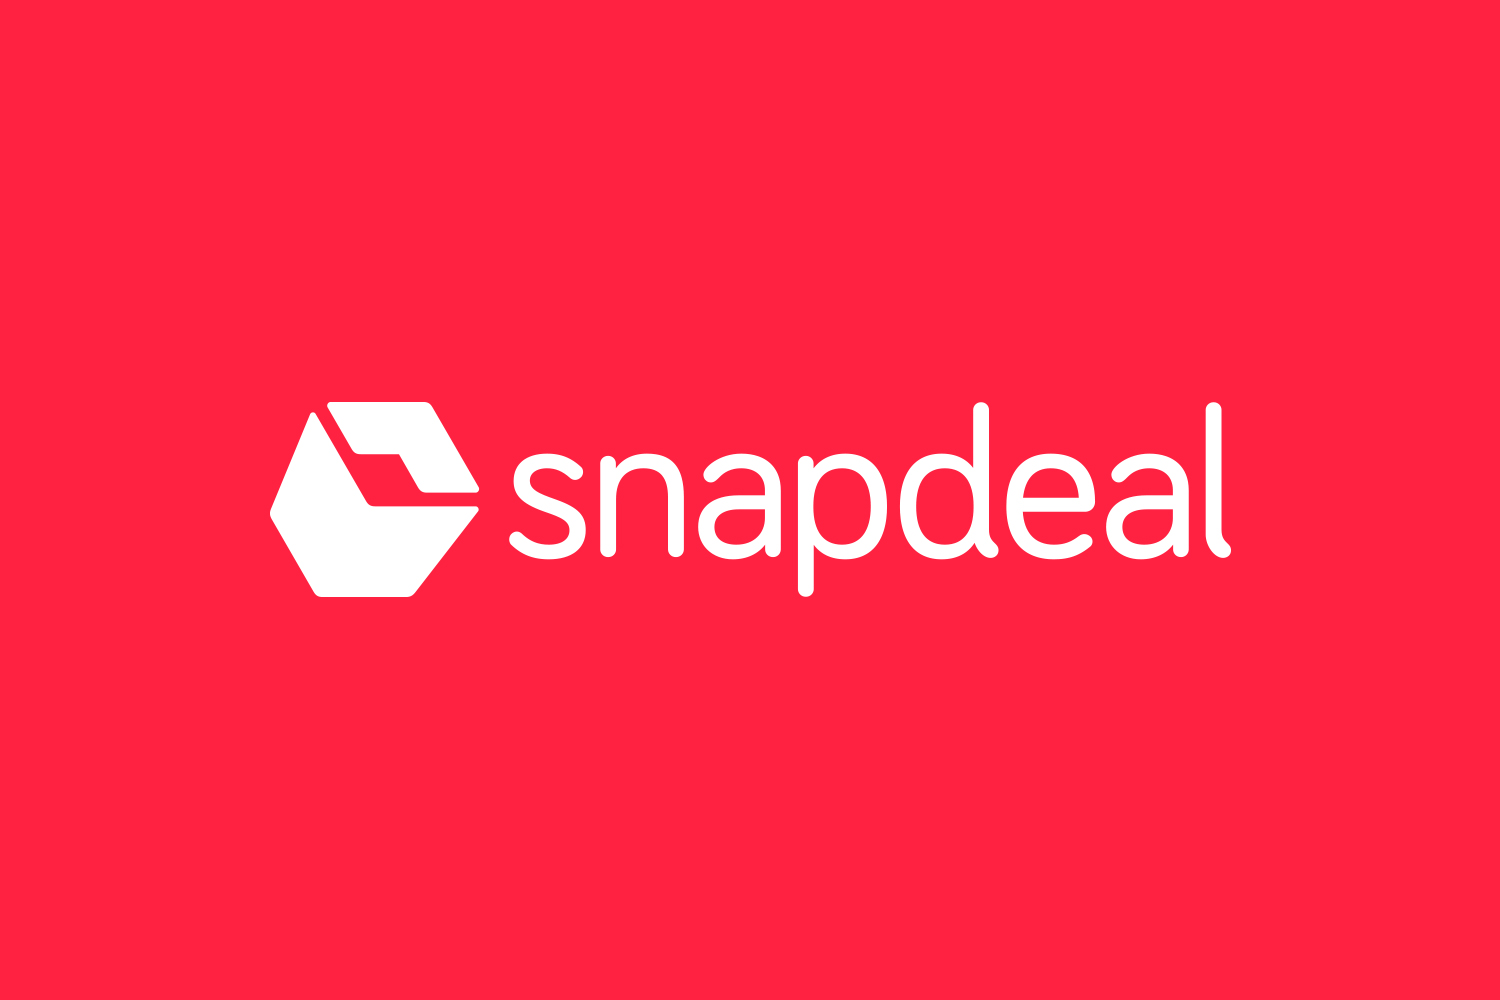 DesignStudio creates new branding for e-commerce site Snapdeal